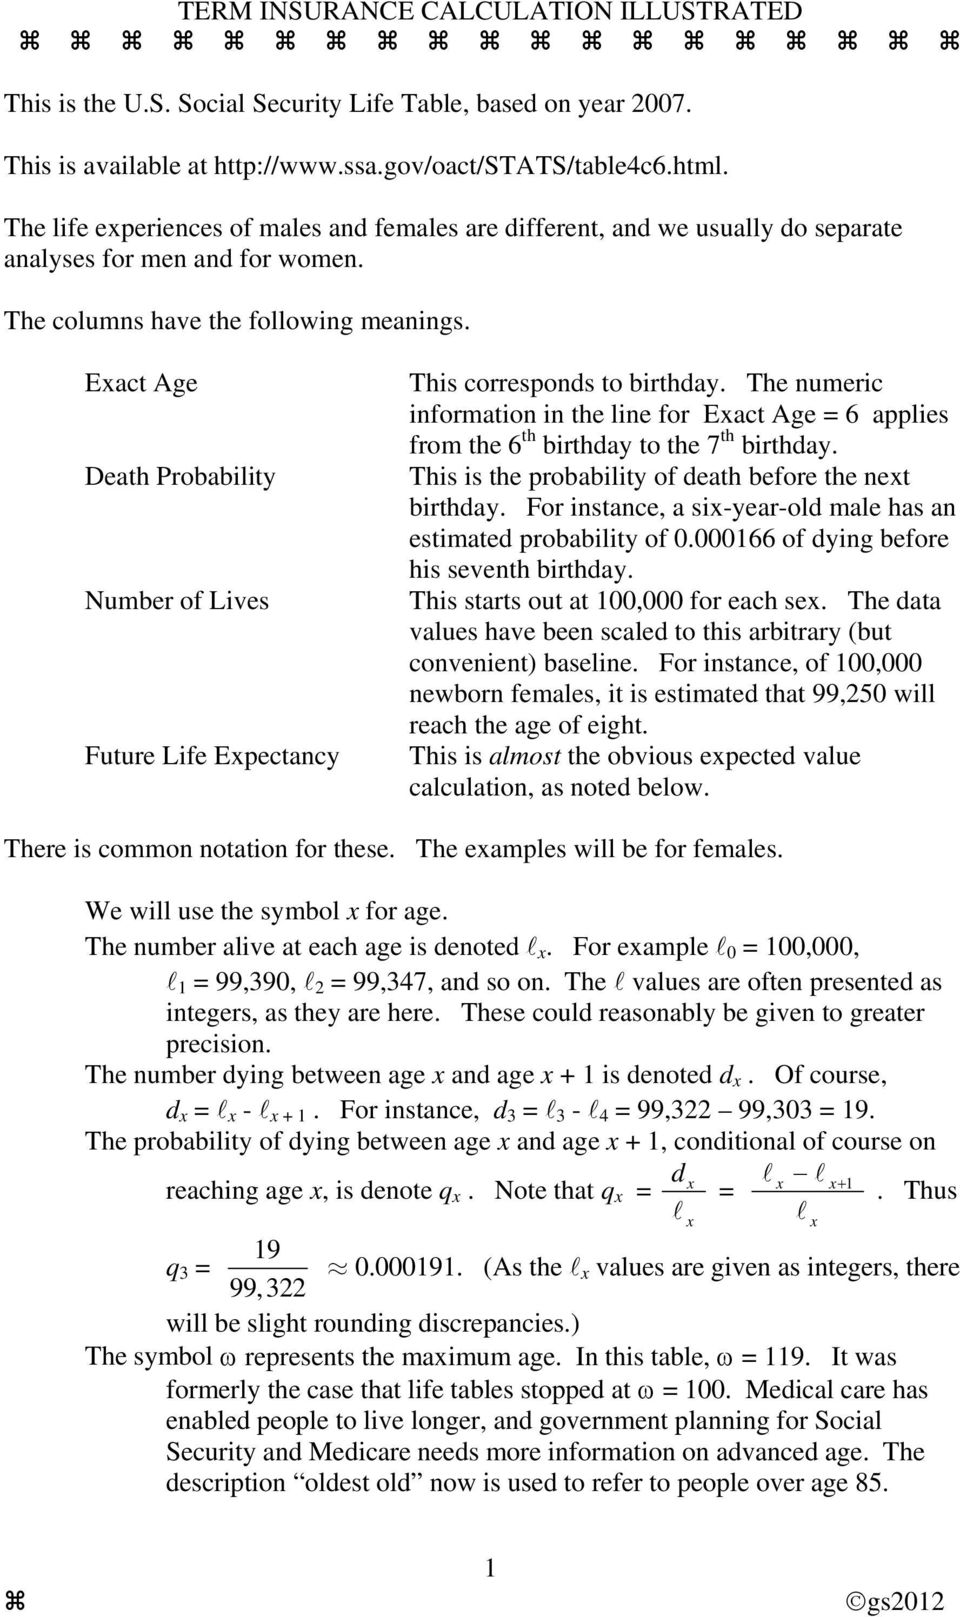 The numeric information in the ine for Eact Age = 6 appies from the 6 th birthday to the 7 th birthday. This is the probabiity of death before the net birthday.